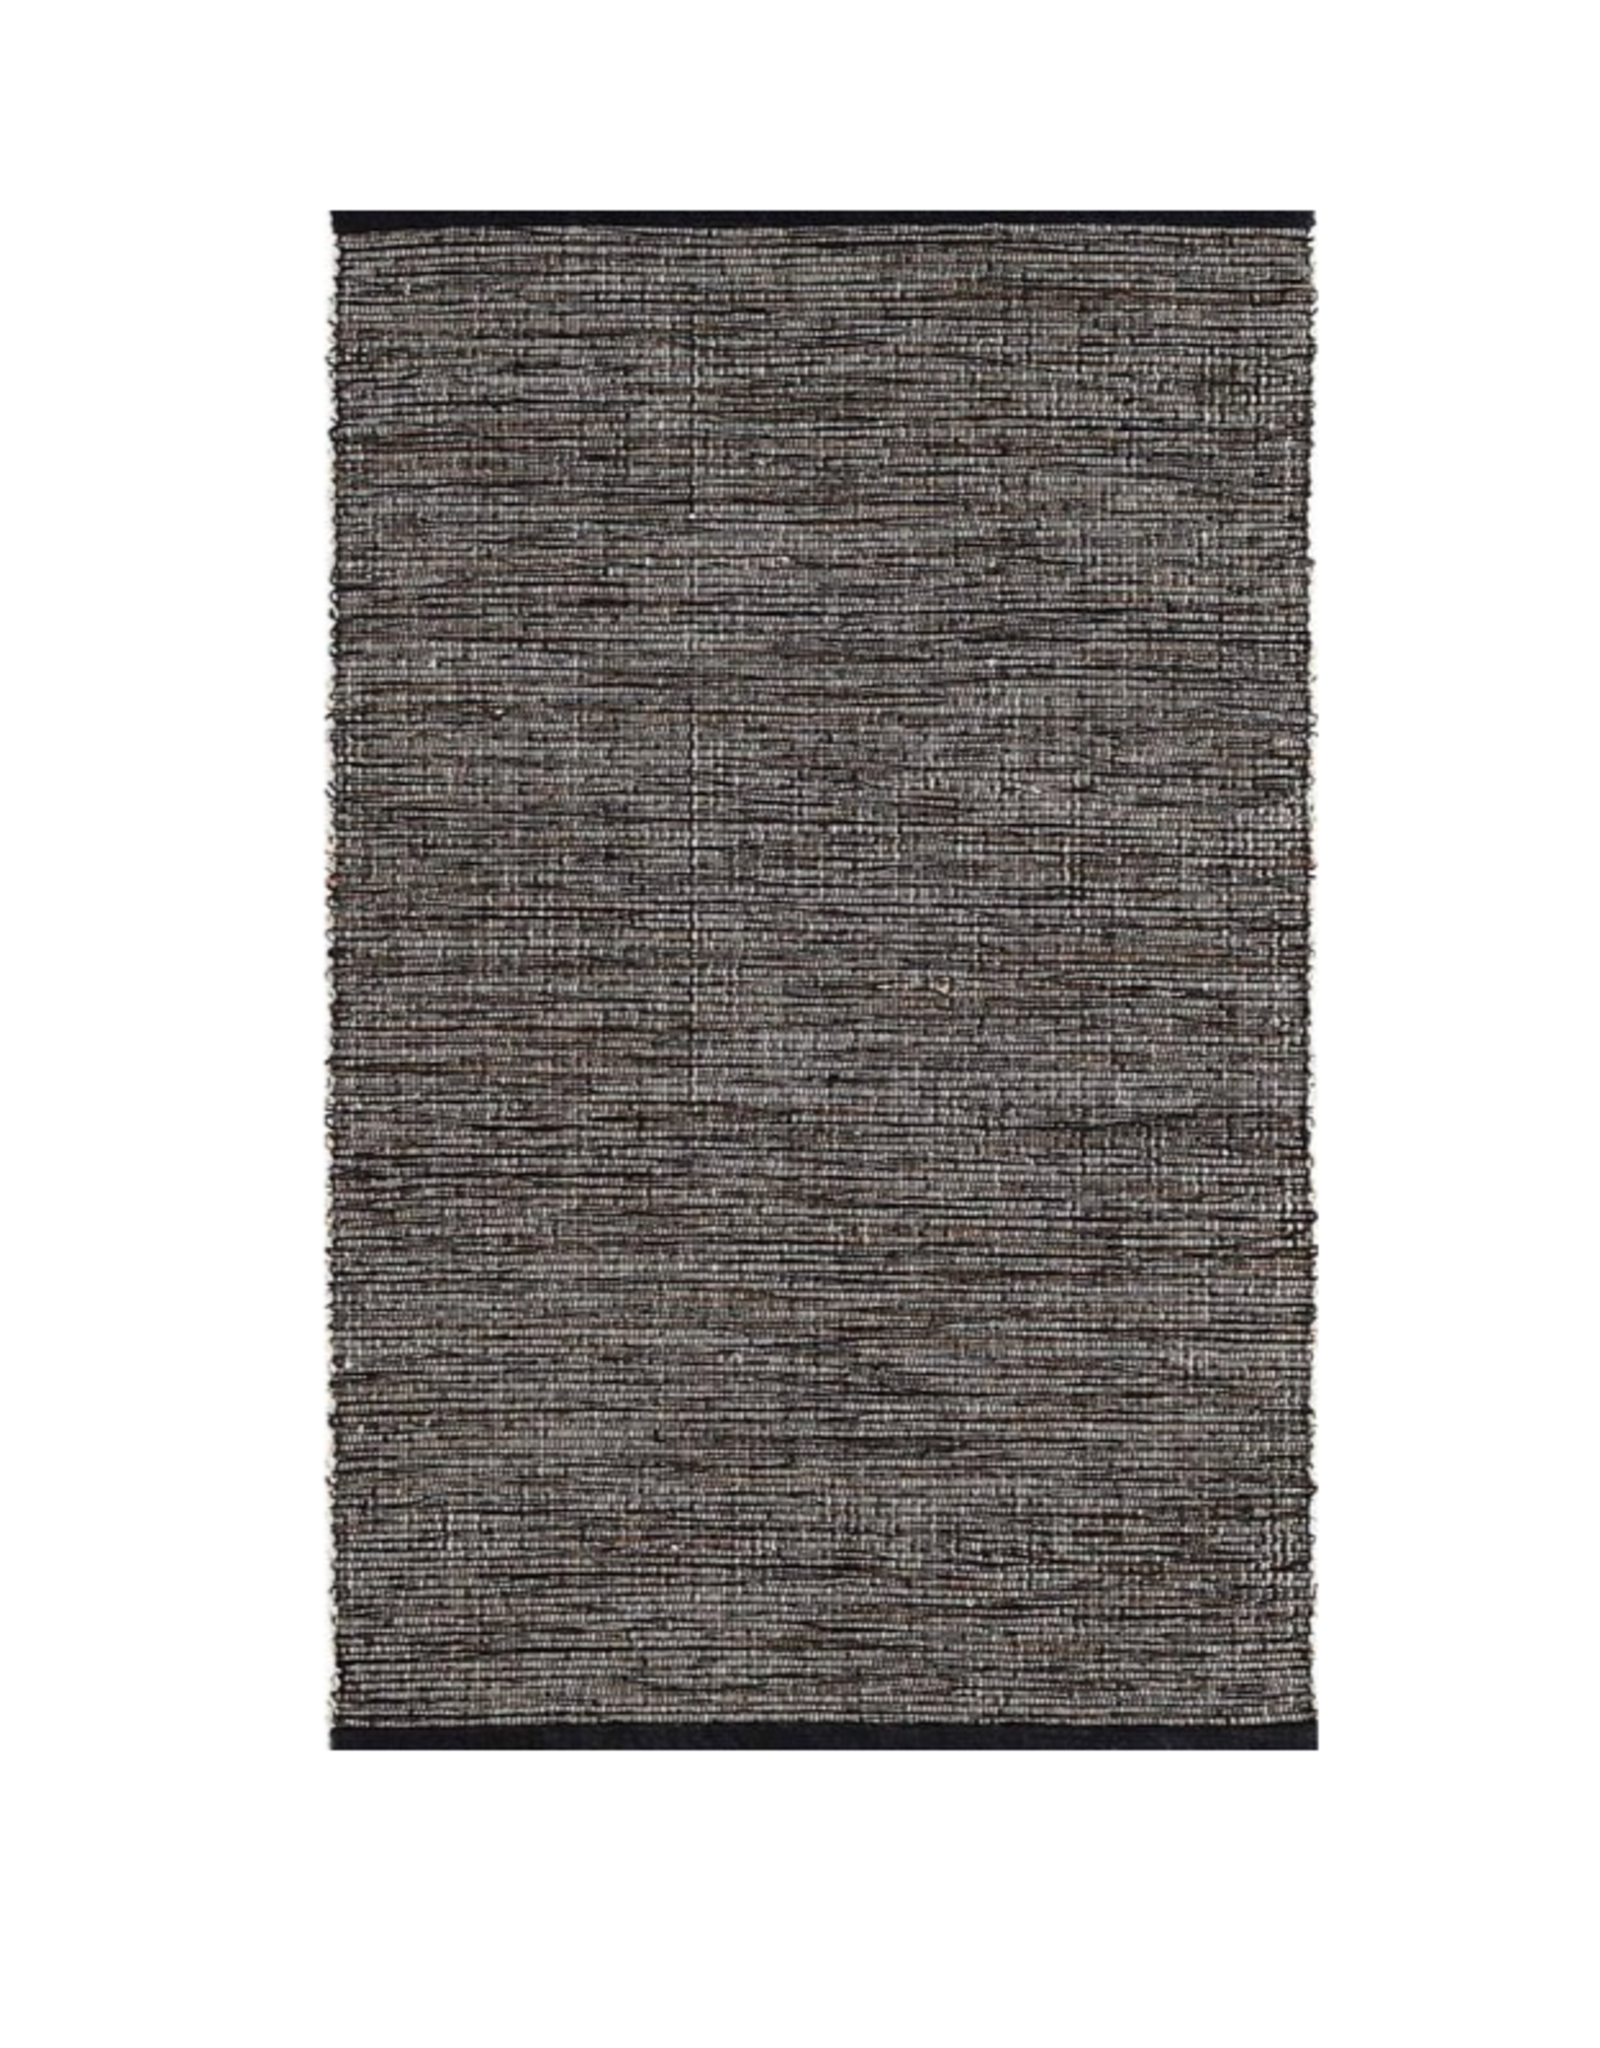 RUG GRANT BLACK AND BROWN WOVEN COTTON 2X3'